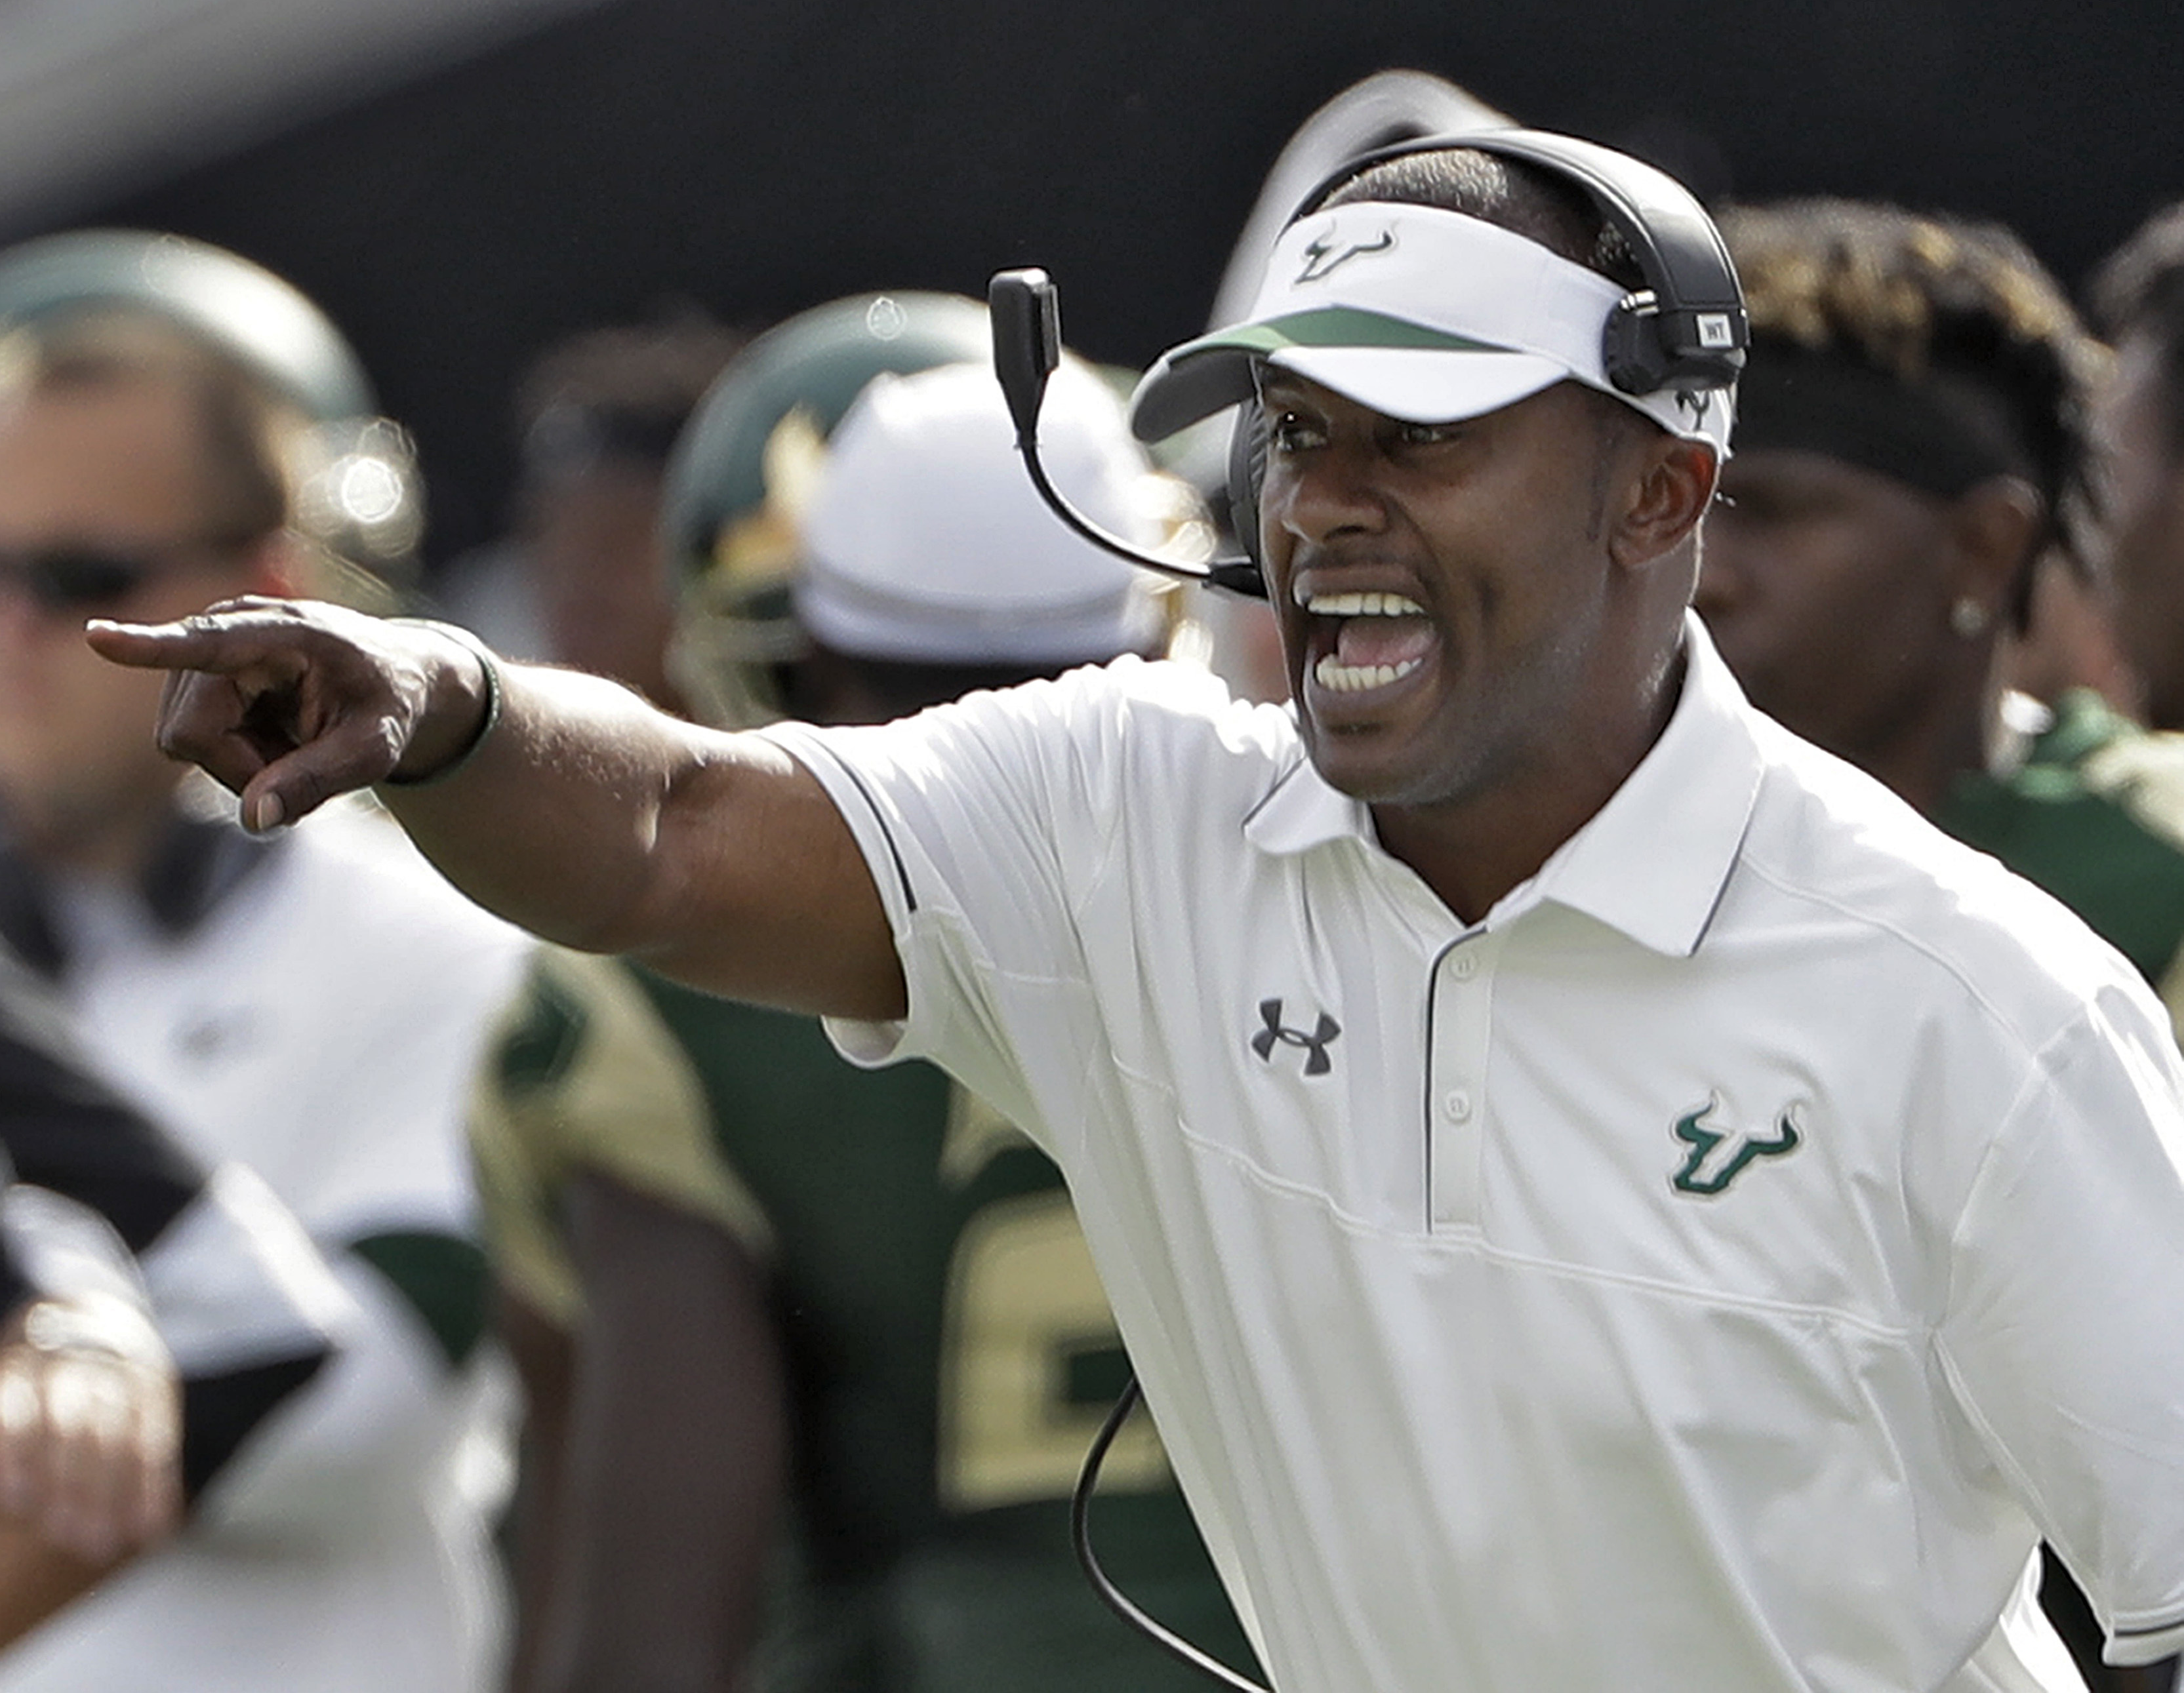 South Florida head coach Willie Taggart shouts instructions to the team during the third quarter of an NCAA college football game against Central Florida, Saturday, Nov. 26, 2016, in Tampa, Fla. South Florida won 48-31. (AP Photo/Chris O'Meara)